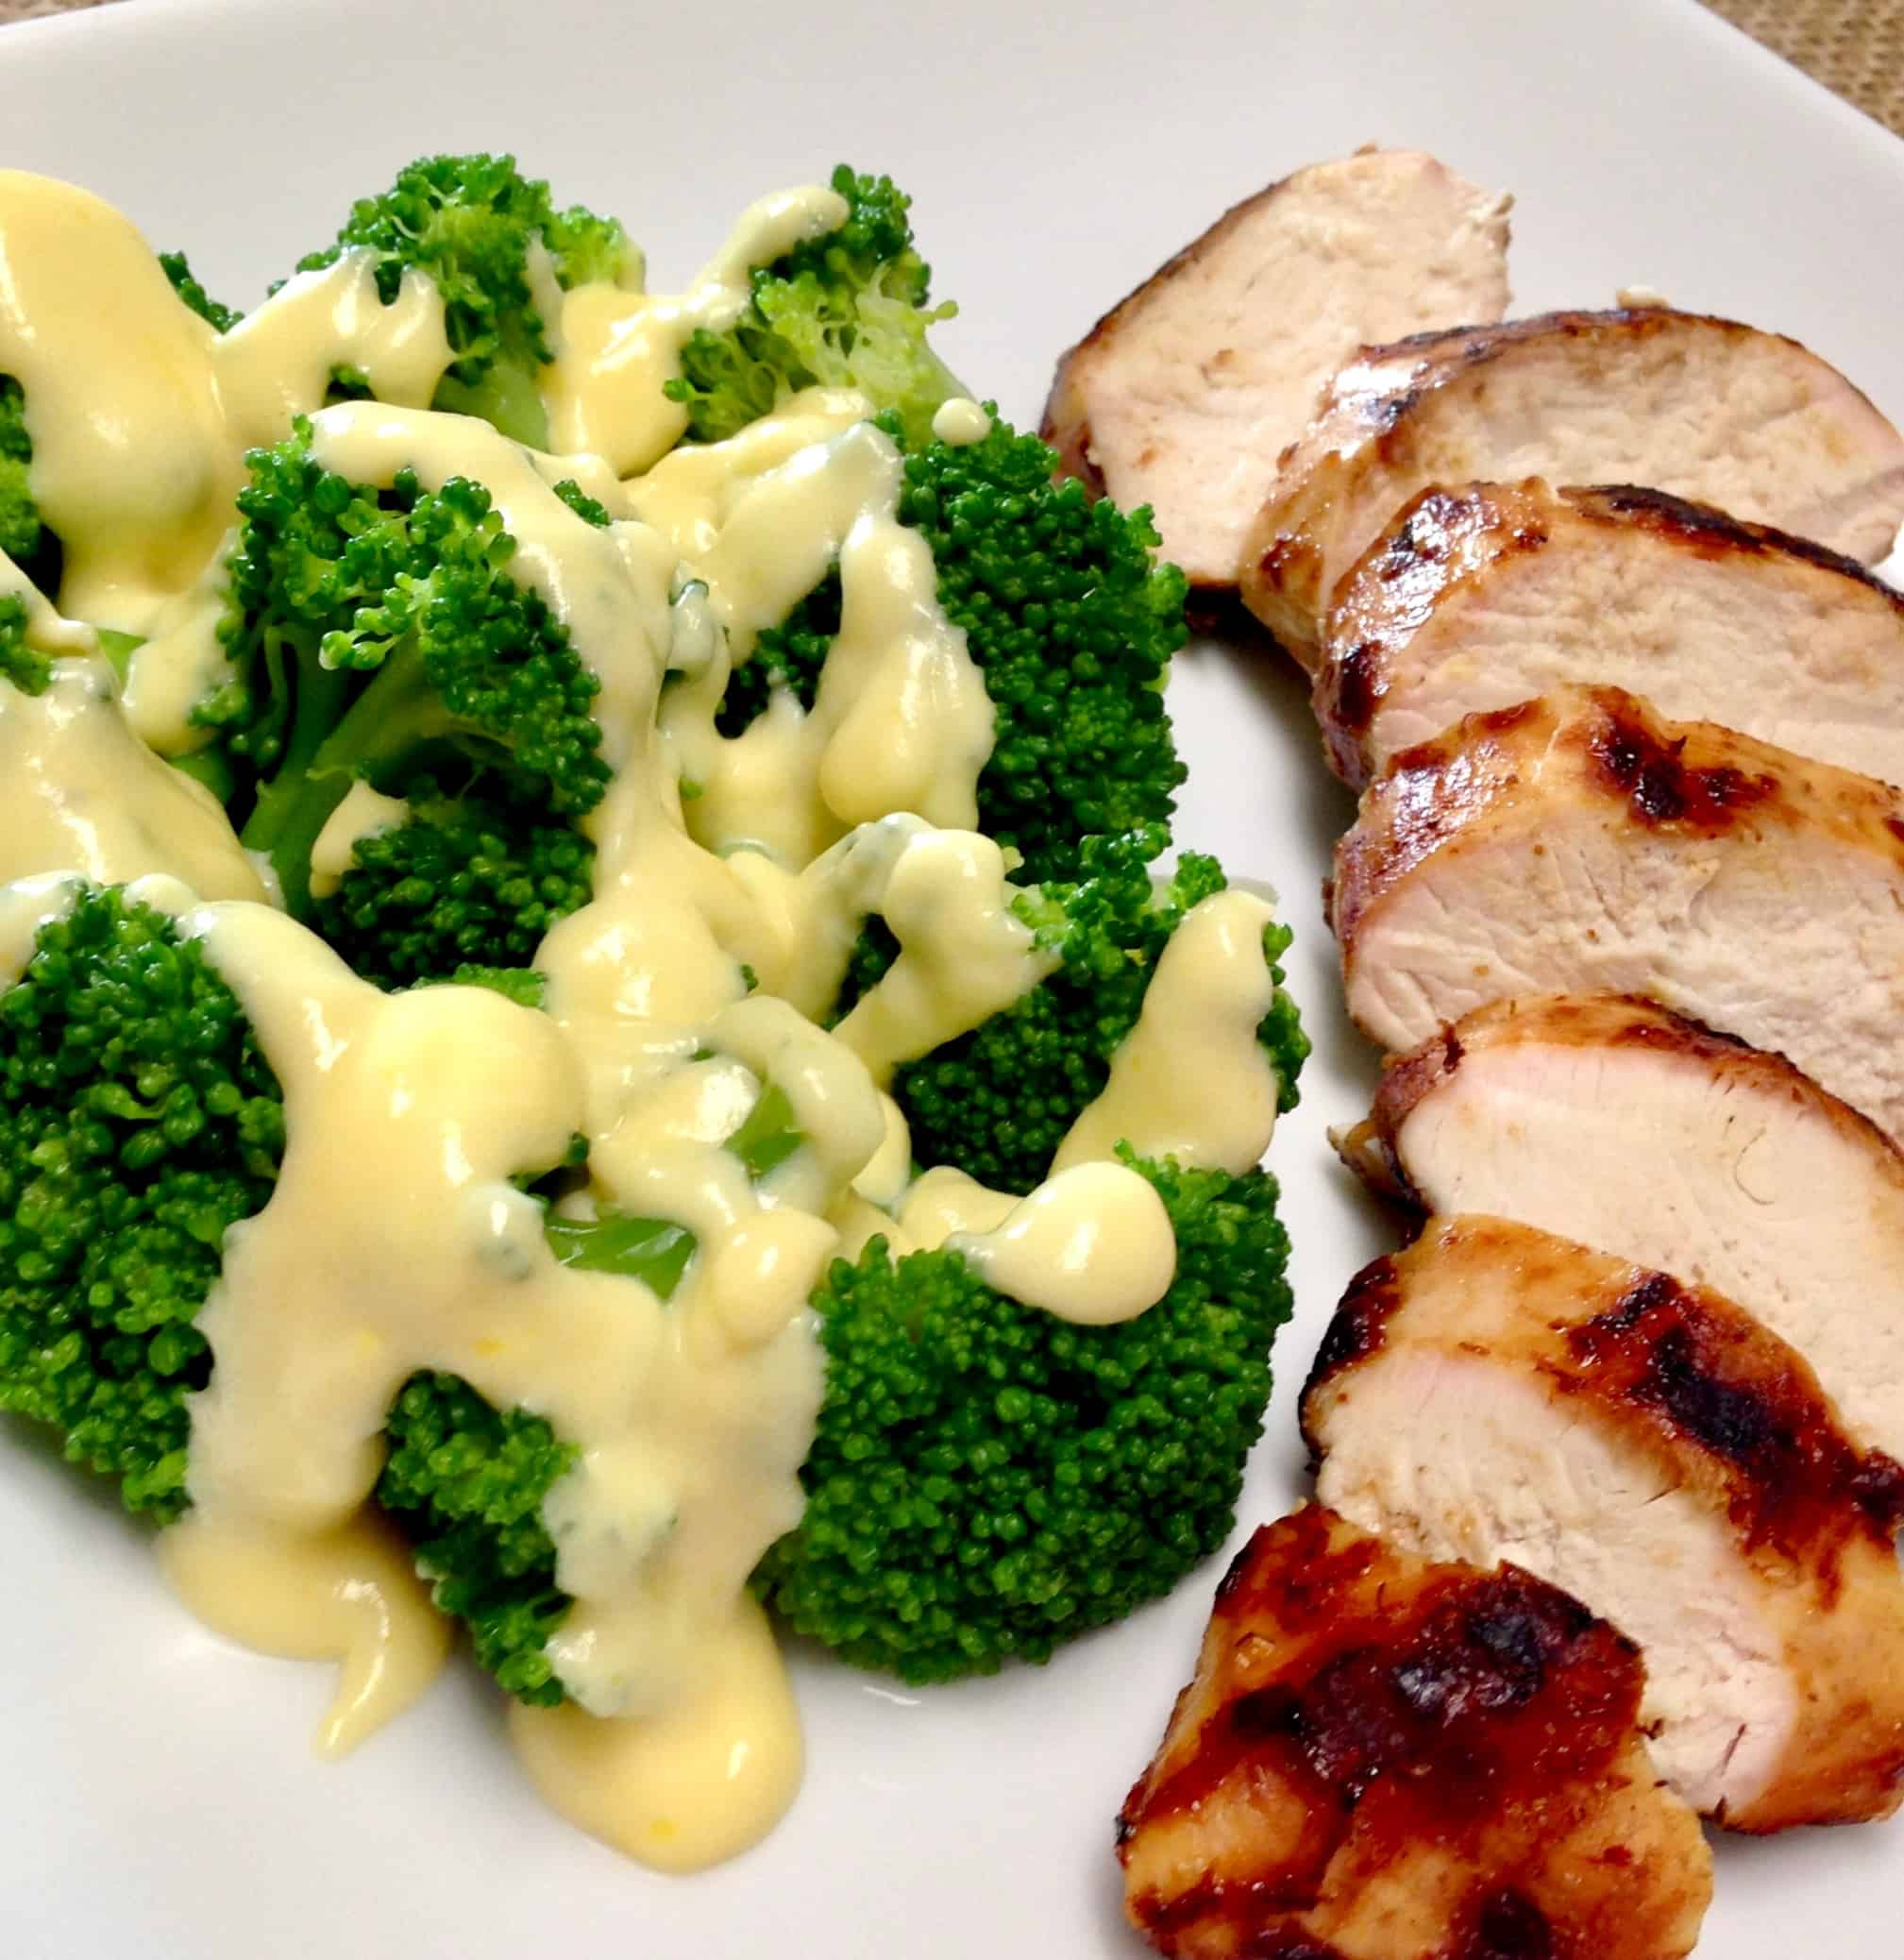 broccoli with cheese sauce next to sliced grilled chicken on white plate